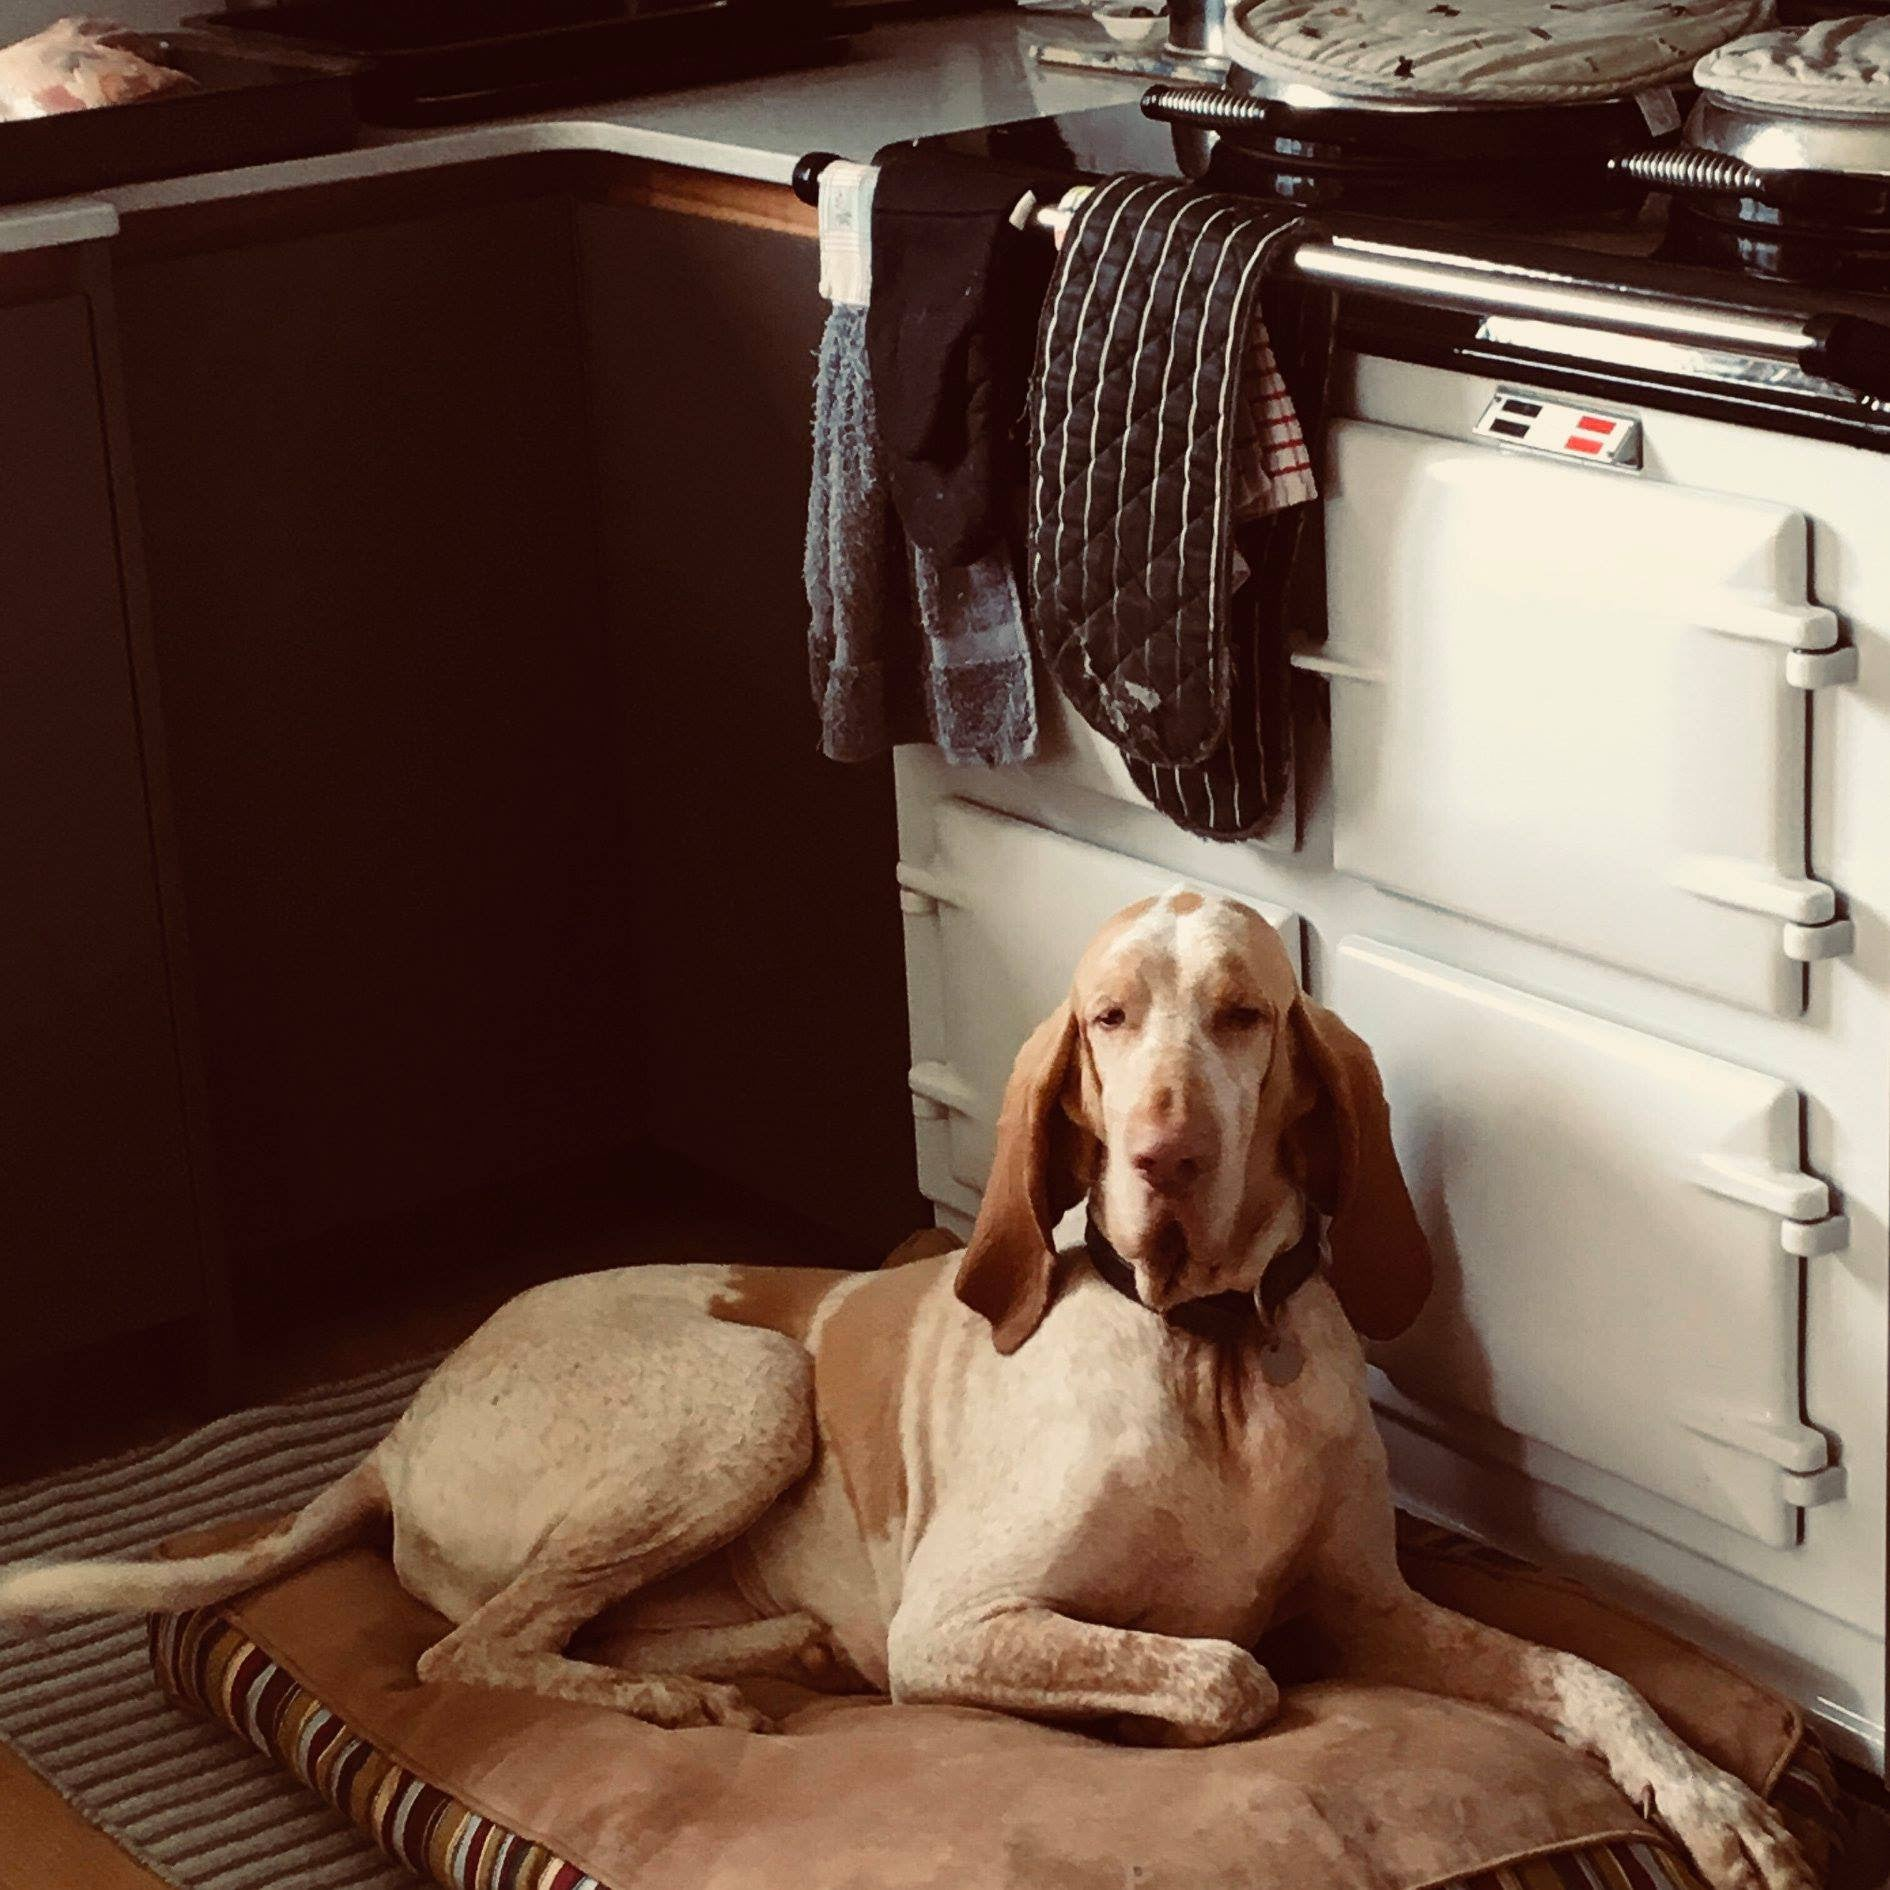 White Aga range cooker with dog sitting on rug